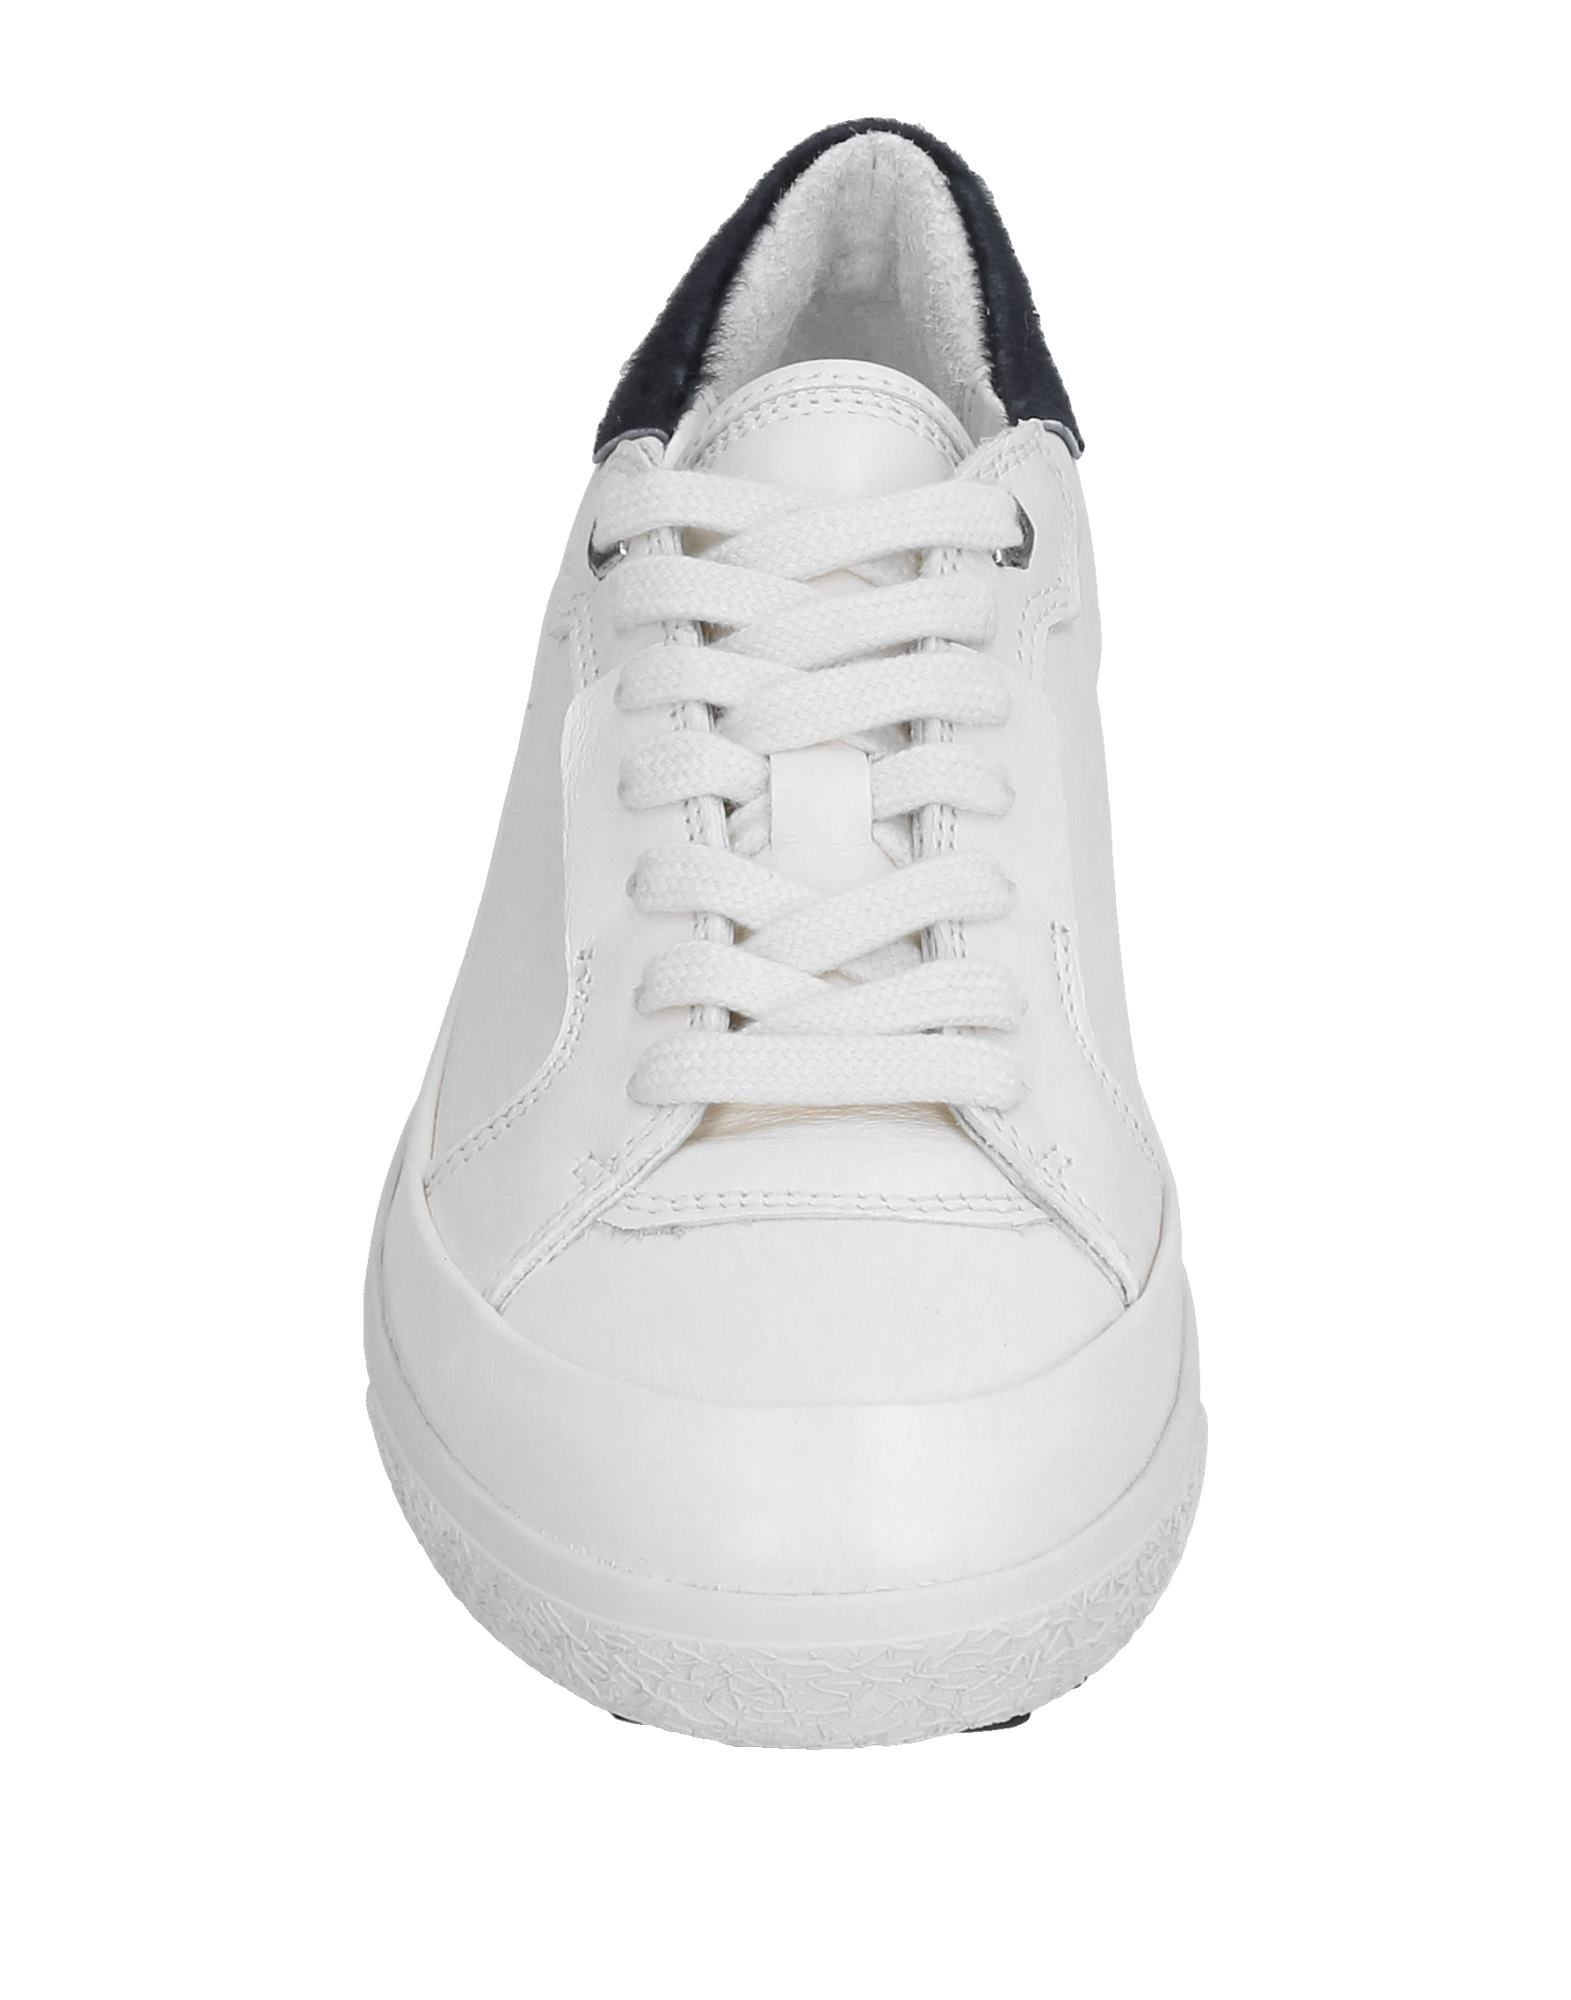 Sneakers Pantofola Pantofola Sneakers D'oro Donna - 11353868PC 6ff1ab